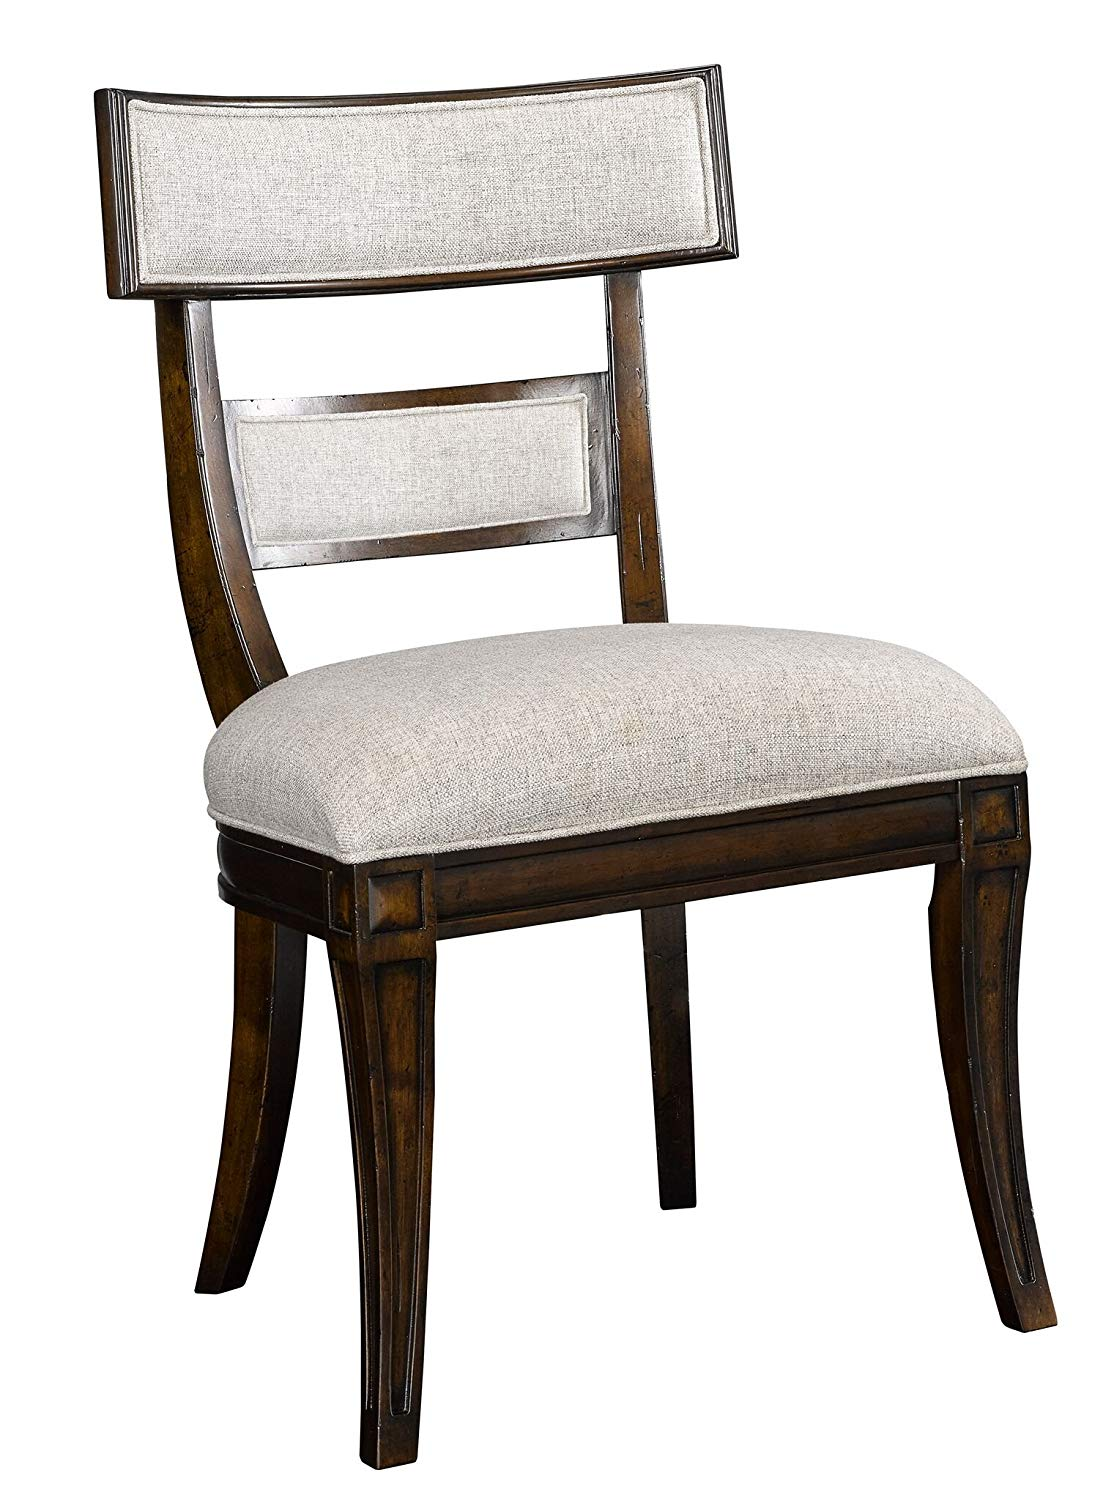 Admirable Cheap Broyhill Chairs Find Broyhill Chairs Deals On Line At Pabps2019 Chair Design Images Pabps2019Com